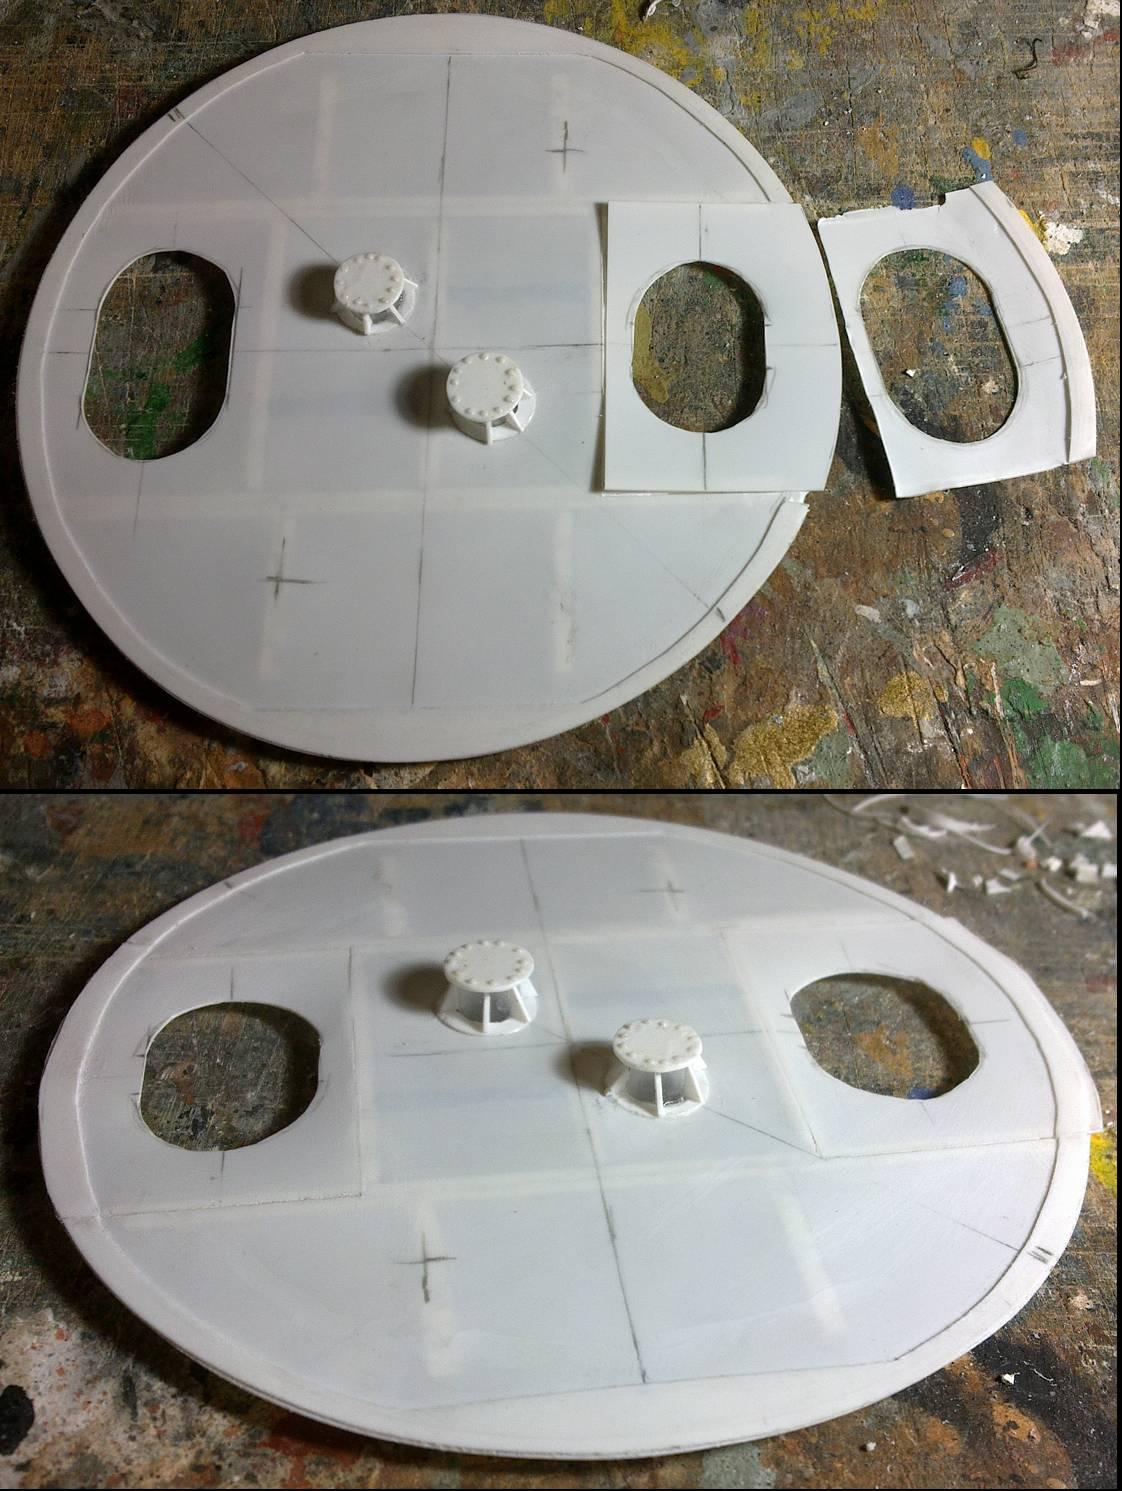 TP test wip 4; correcting holes